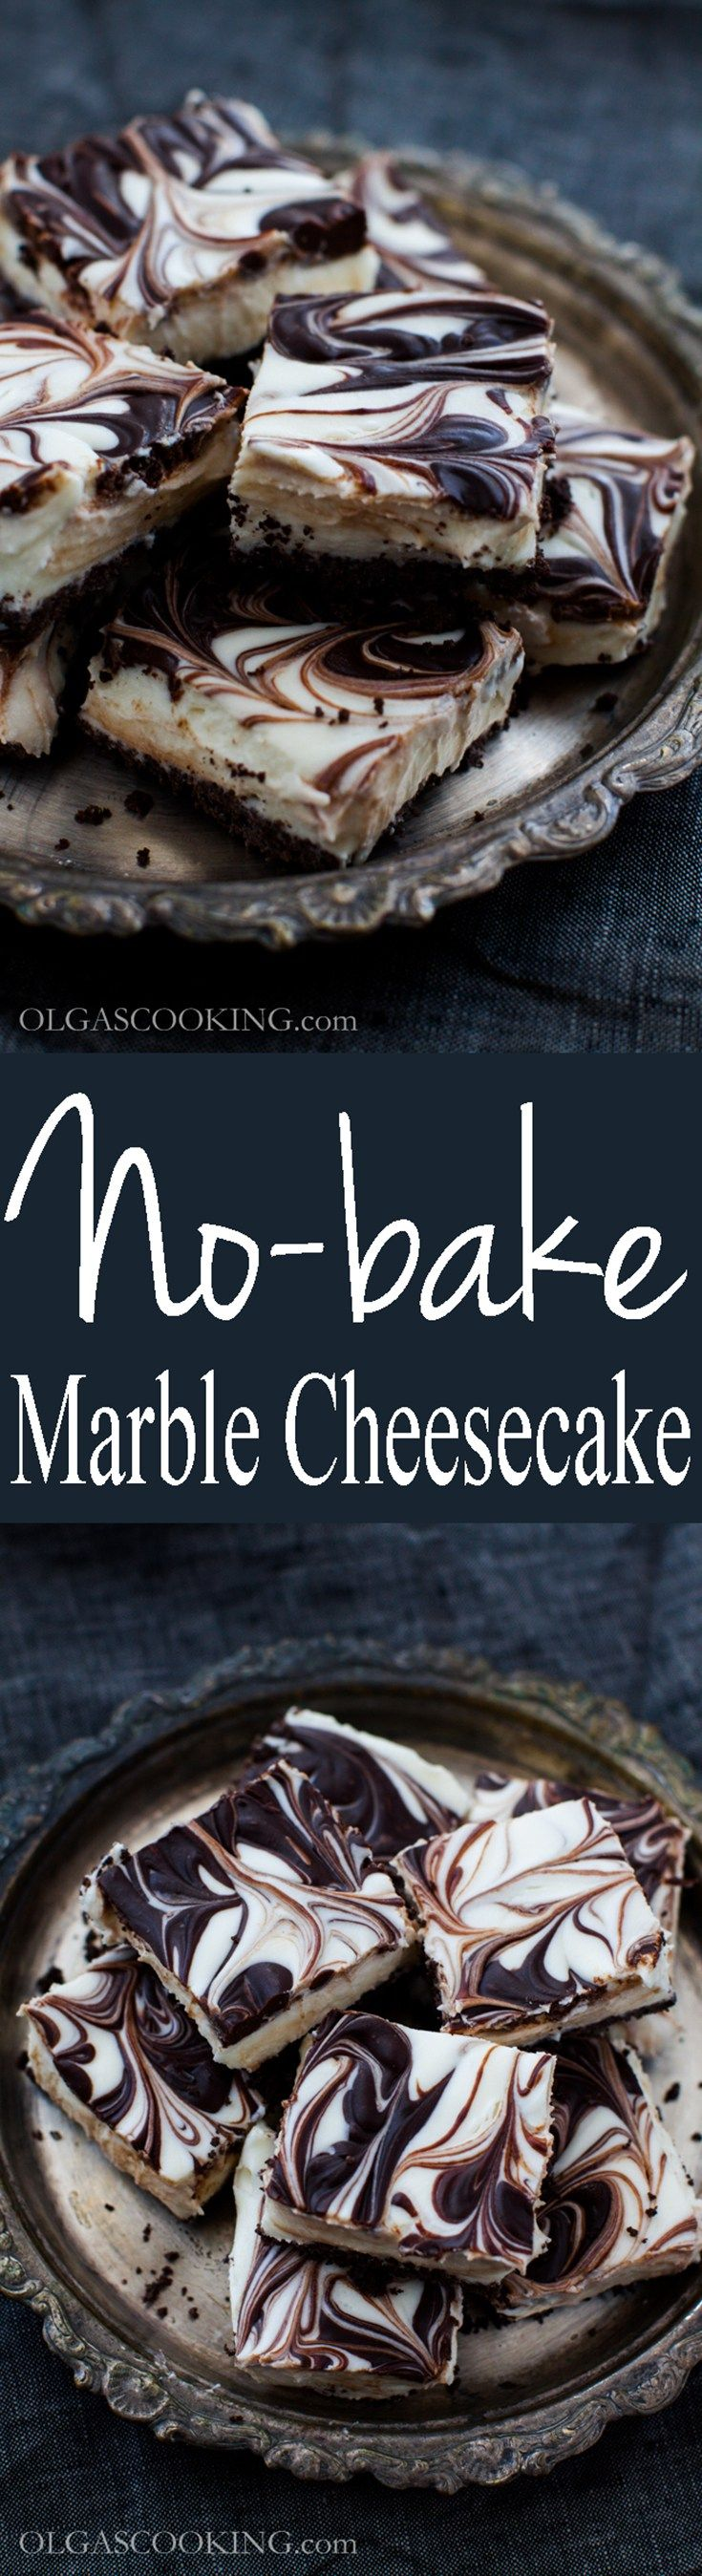 No-bake Marble Cheesecake Bites                                                                                                                                                                                 More